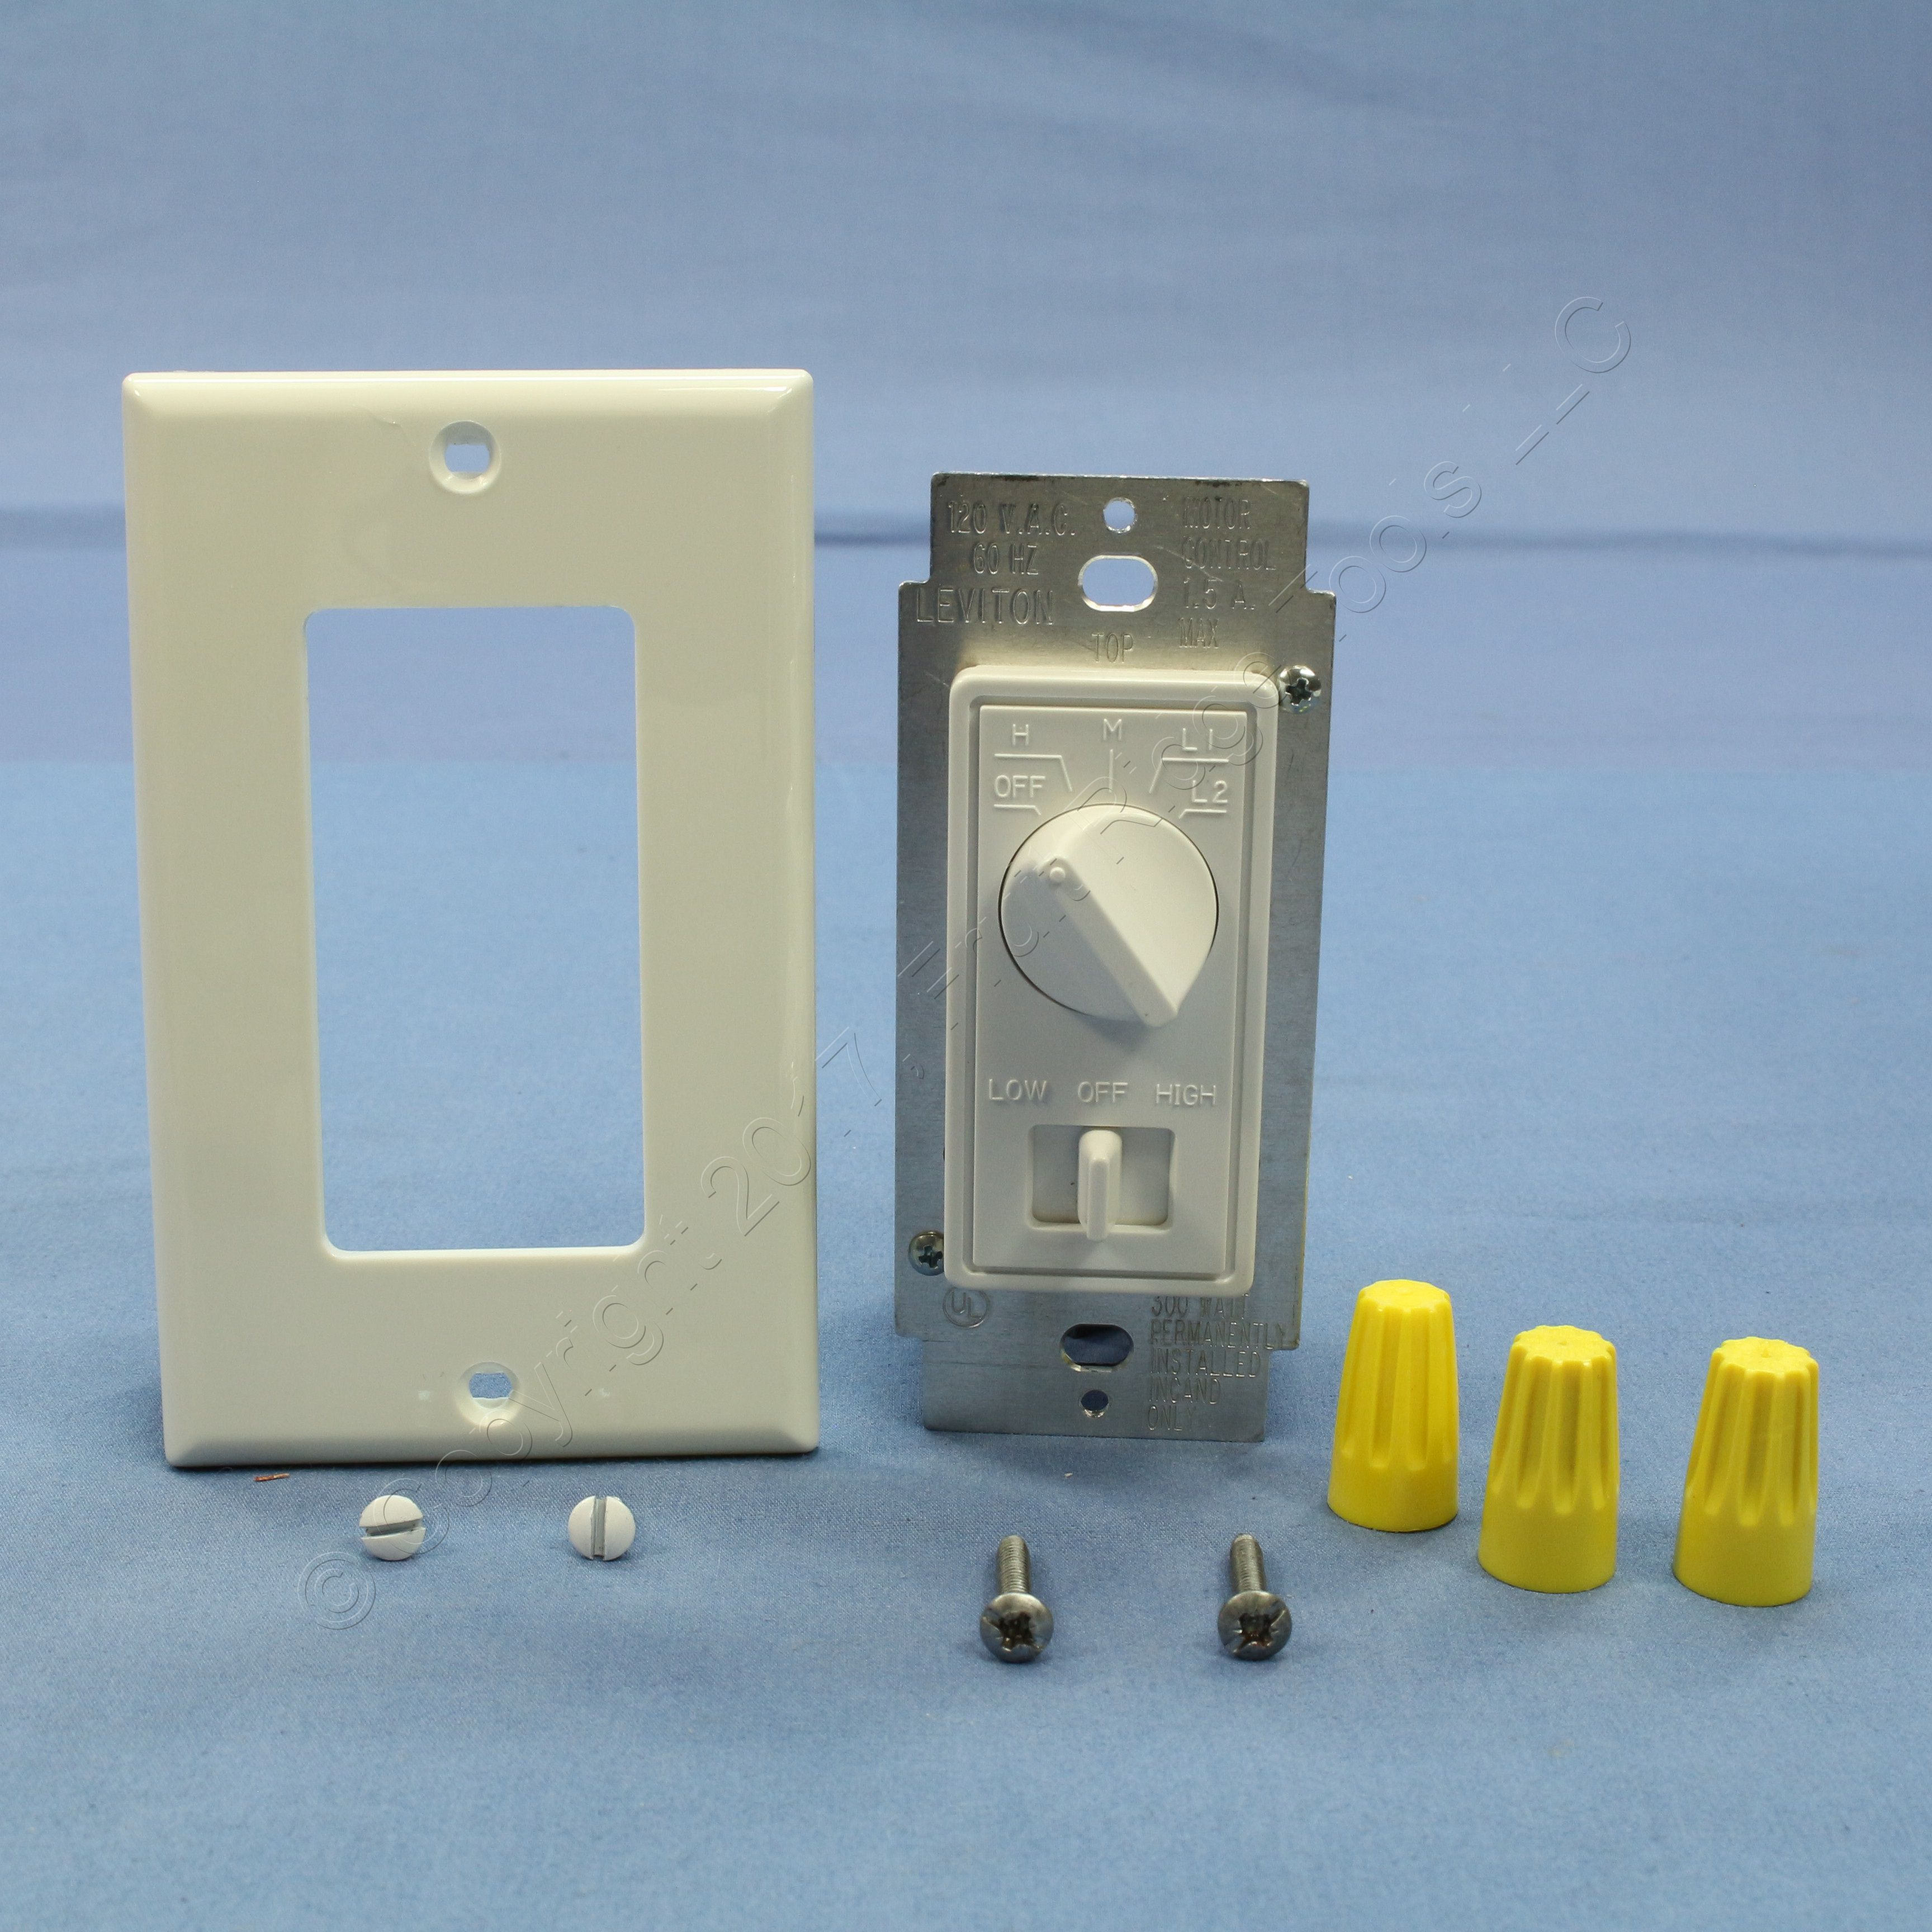 Leviton White Decora Dimmer Switch Stepped Fan Speed